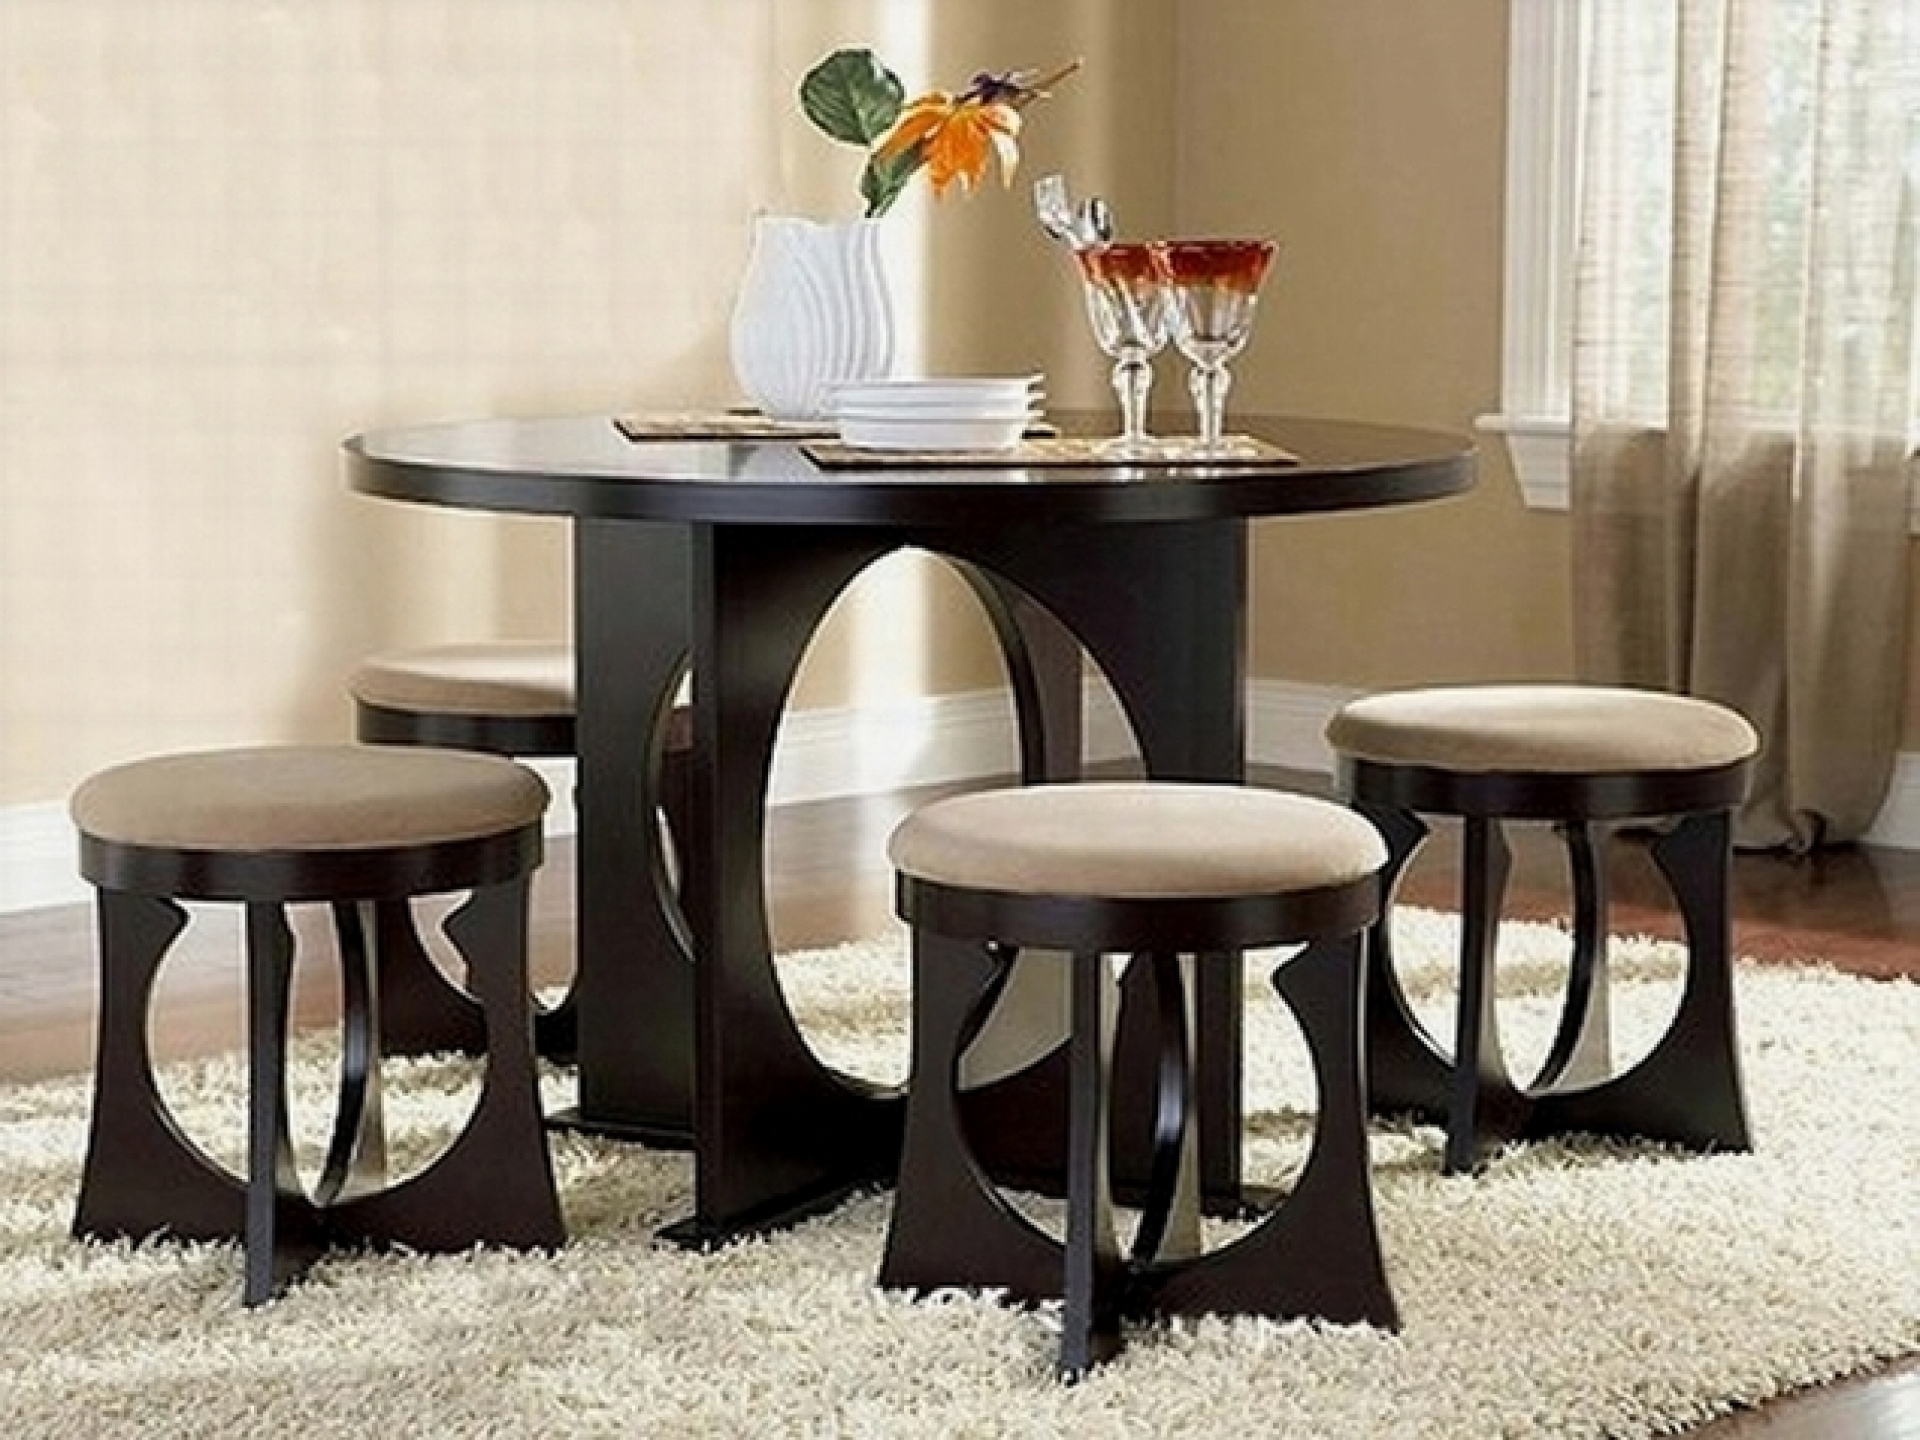 dining room sets for small spaces 30 eyecatching round dining room tables design ideas for dining room 721